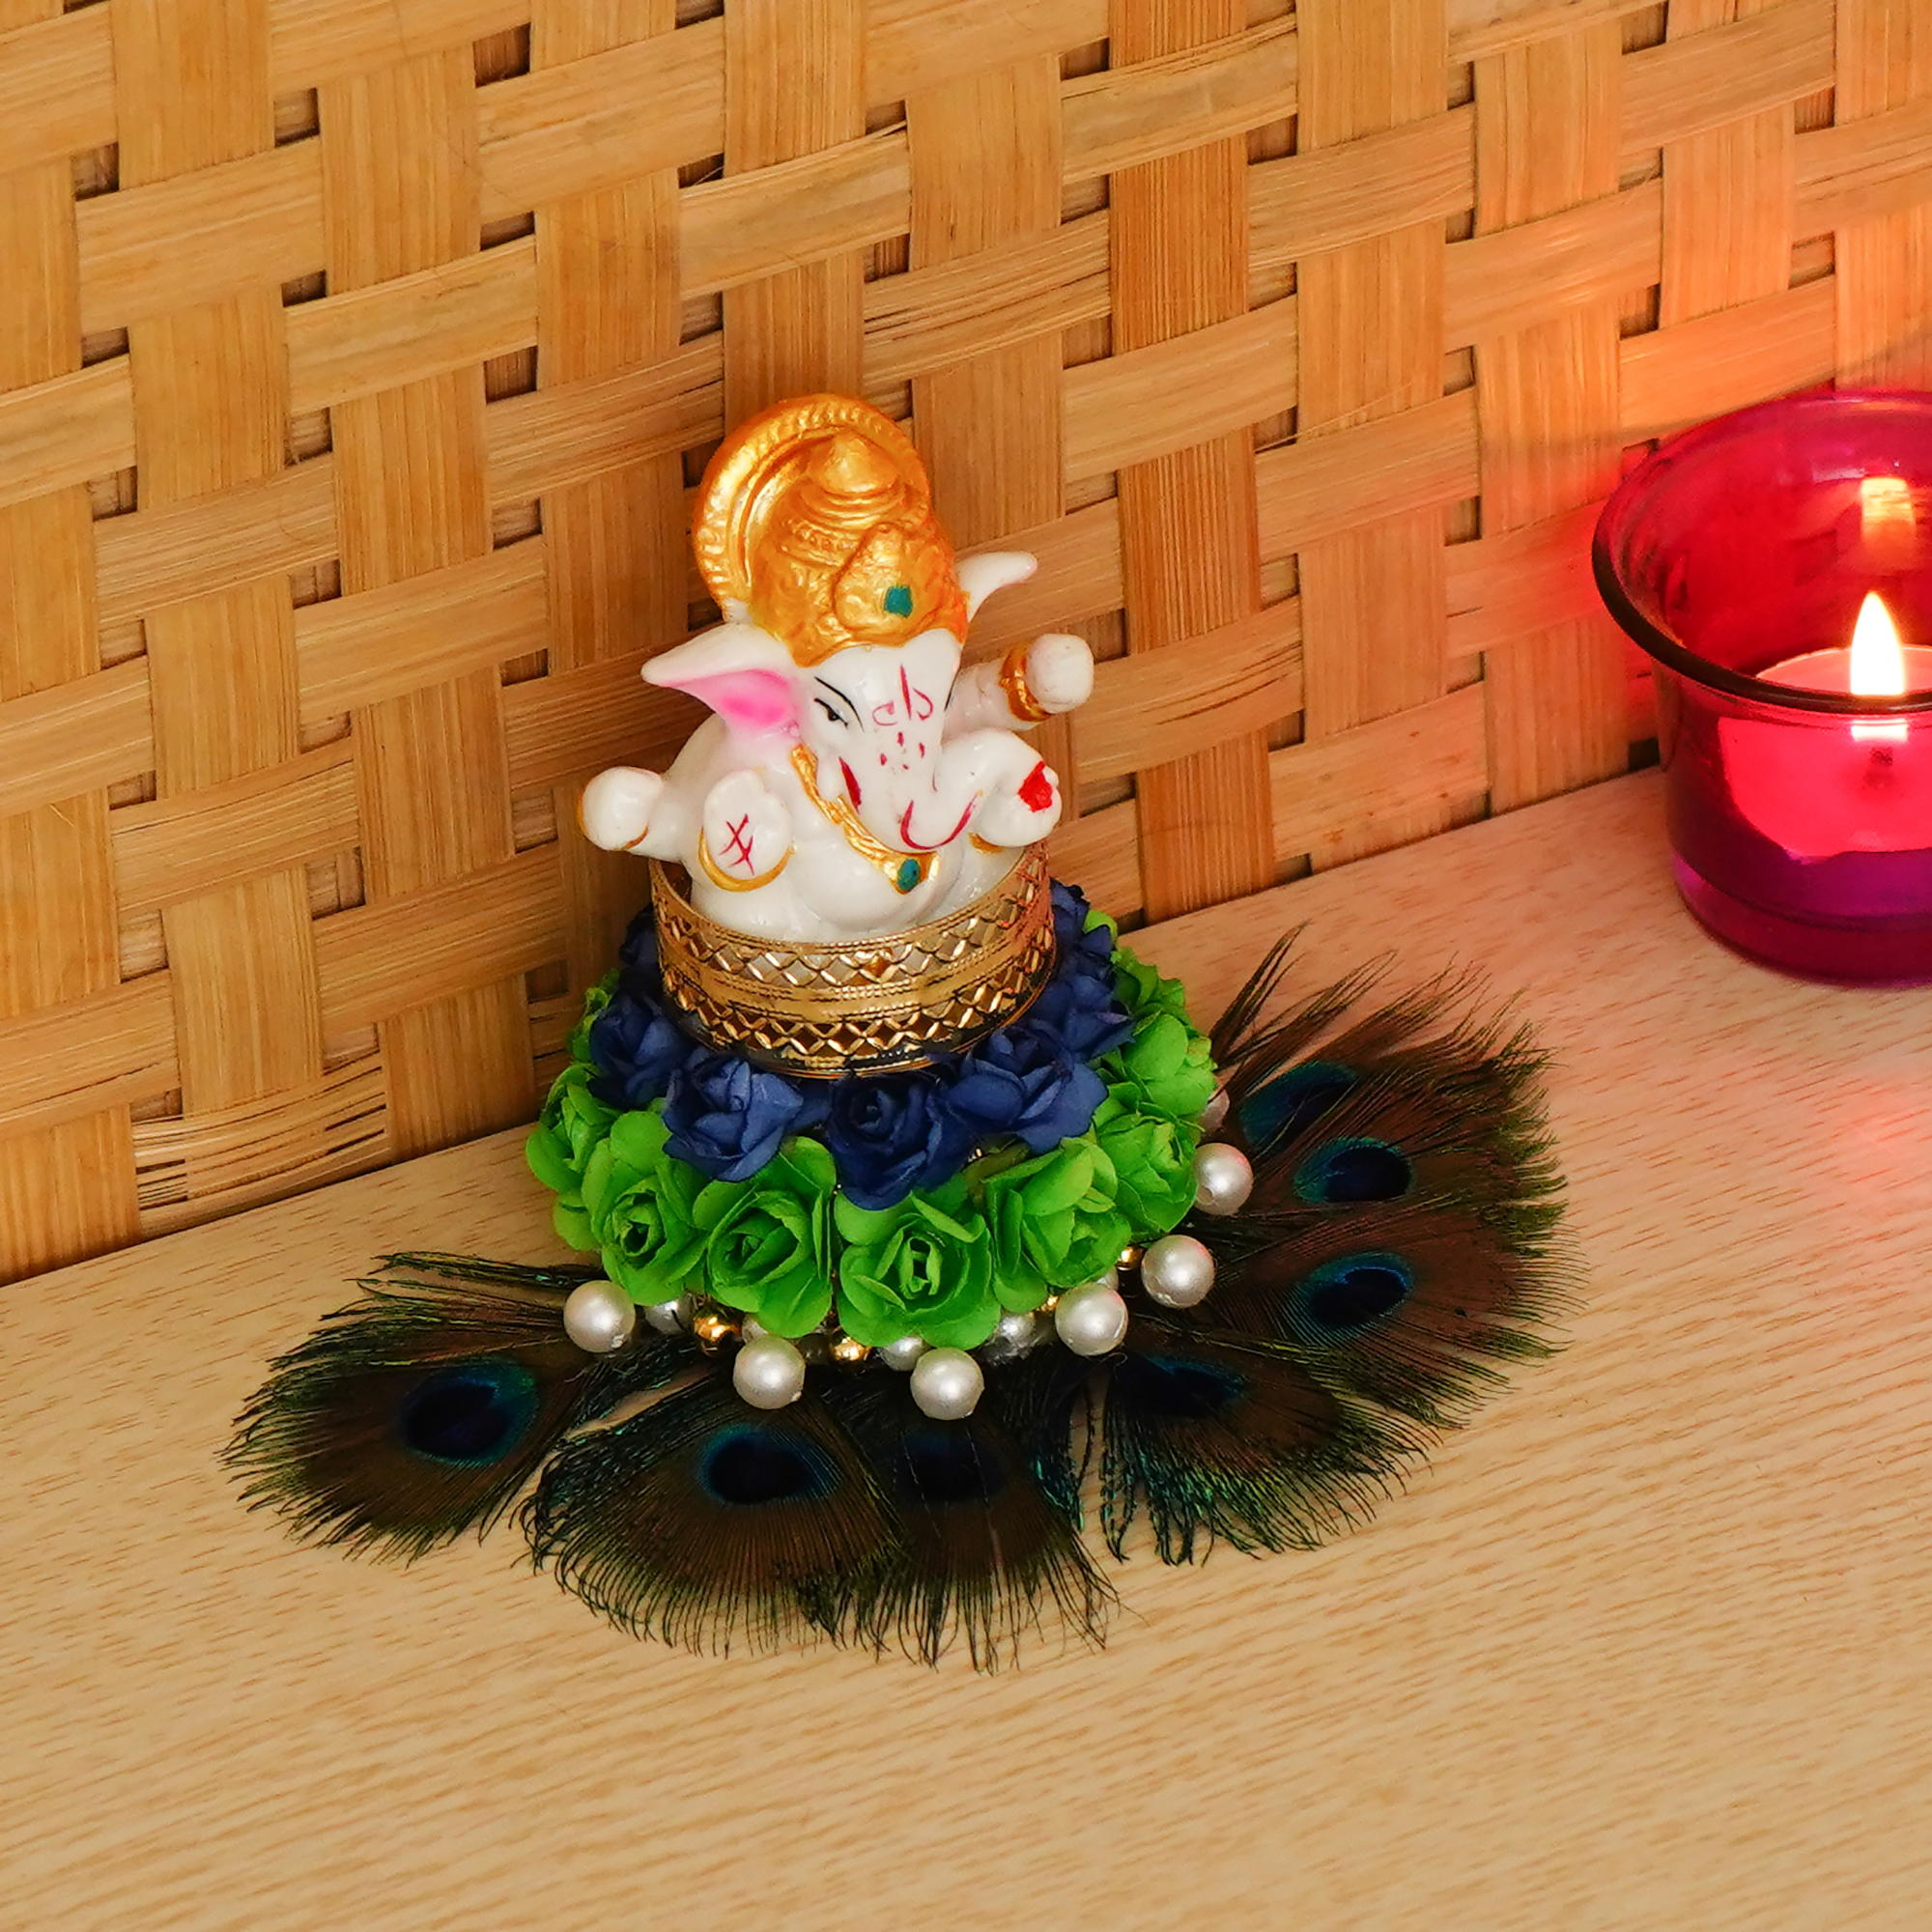 Lord Ganesha Idol on Decorative Handcrafted Floral Plate with Peocock Feather for Home and Car Indian Home Decor